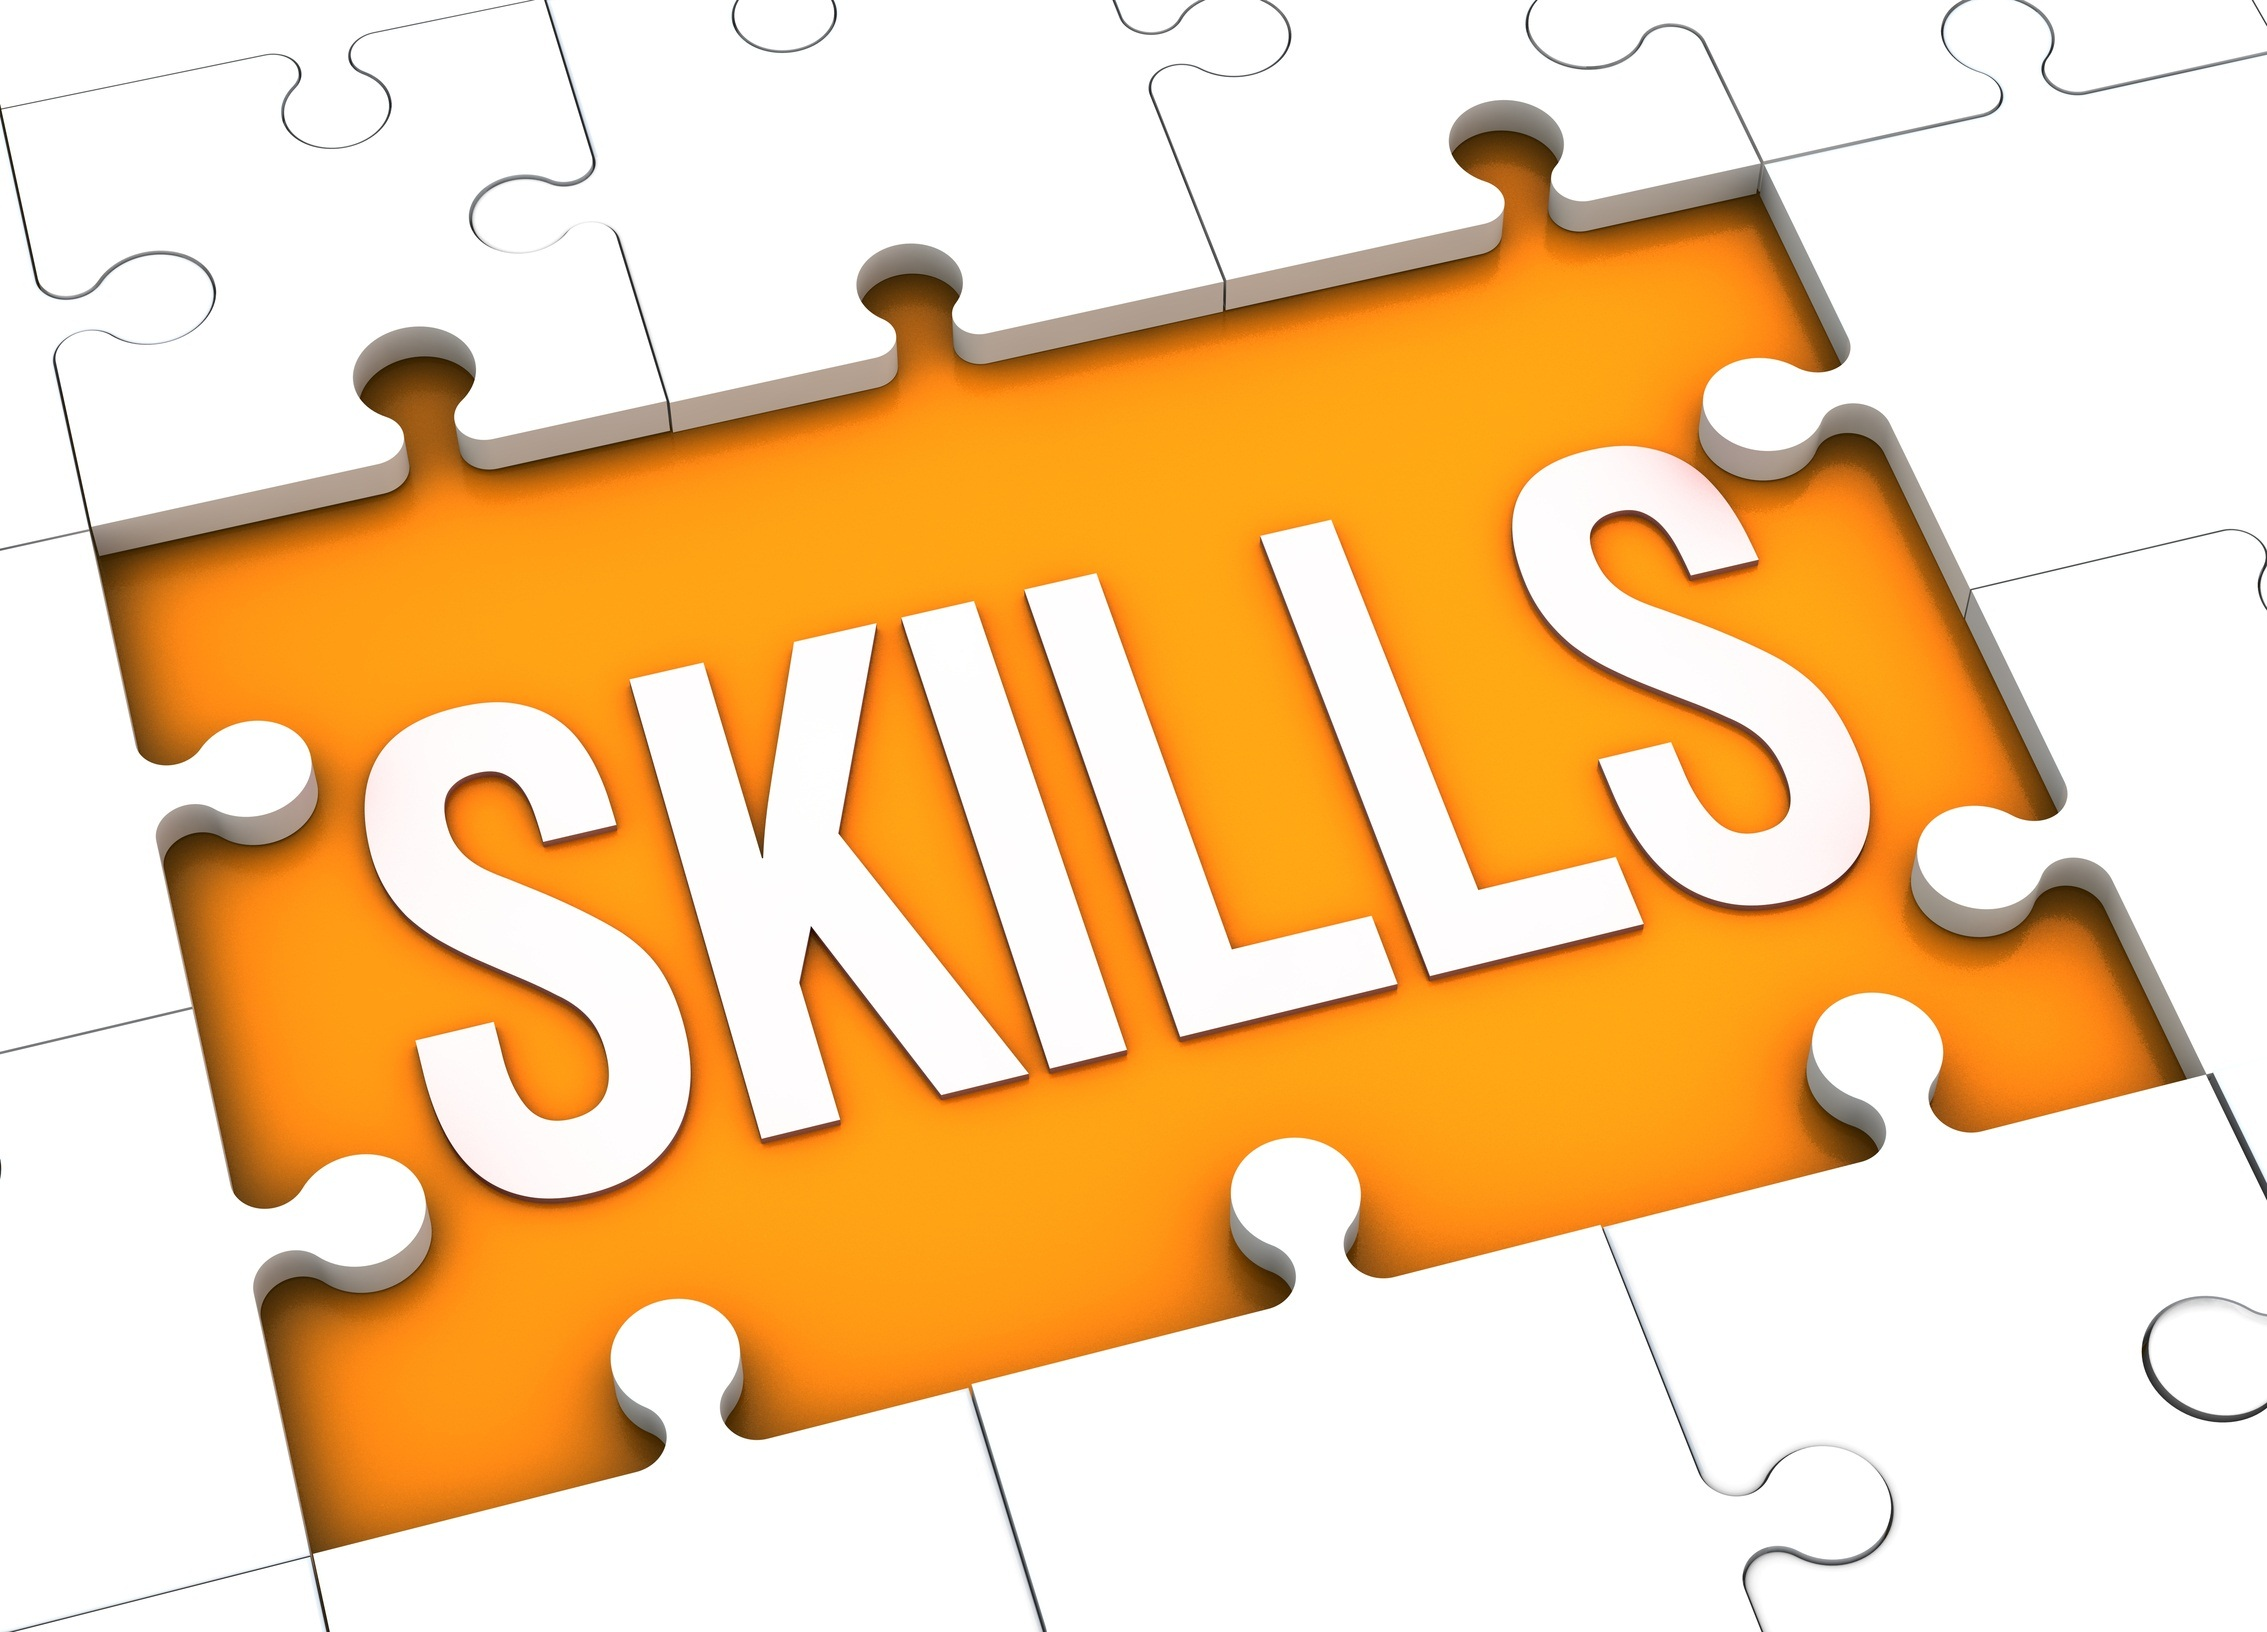 Tools That Are Best To Learn A New Skill